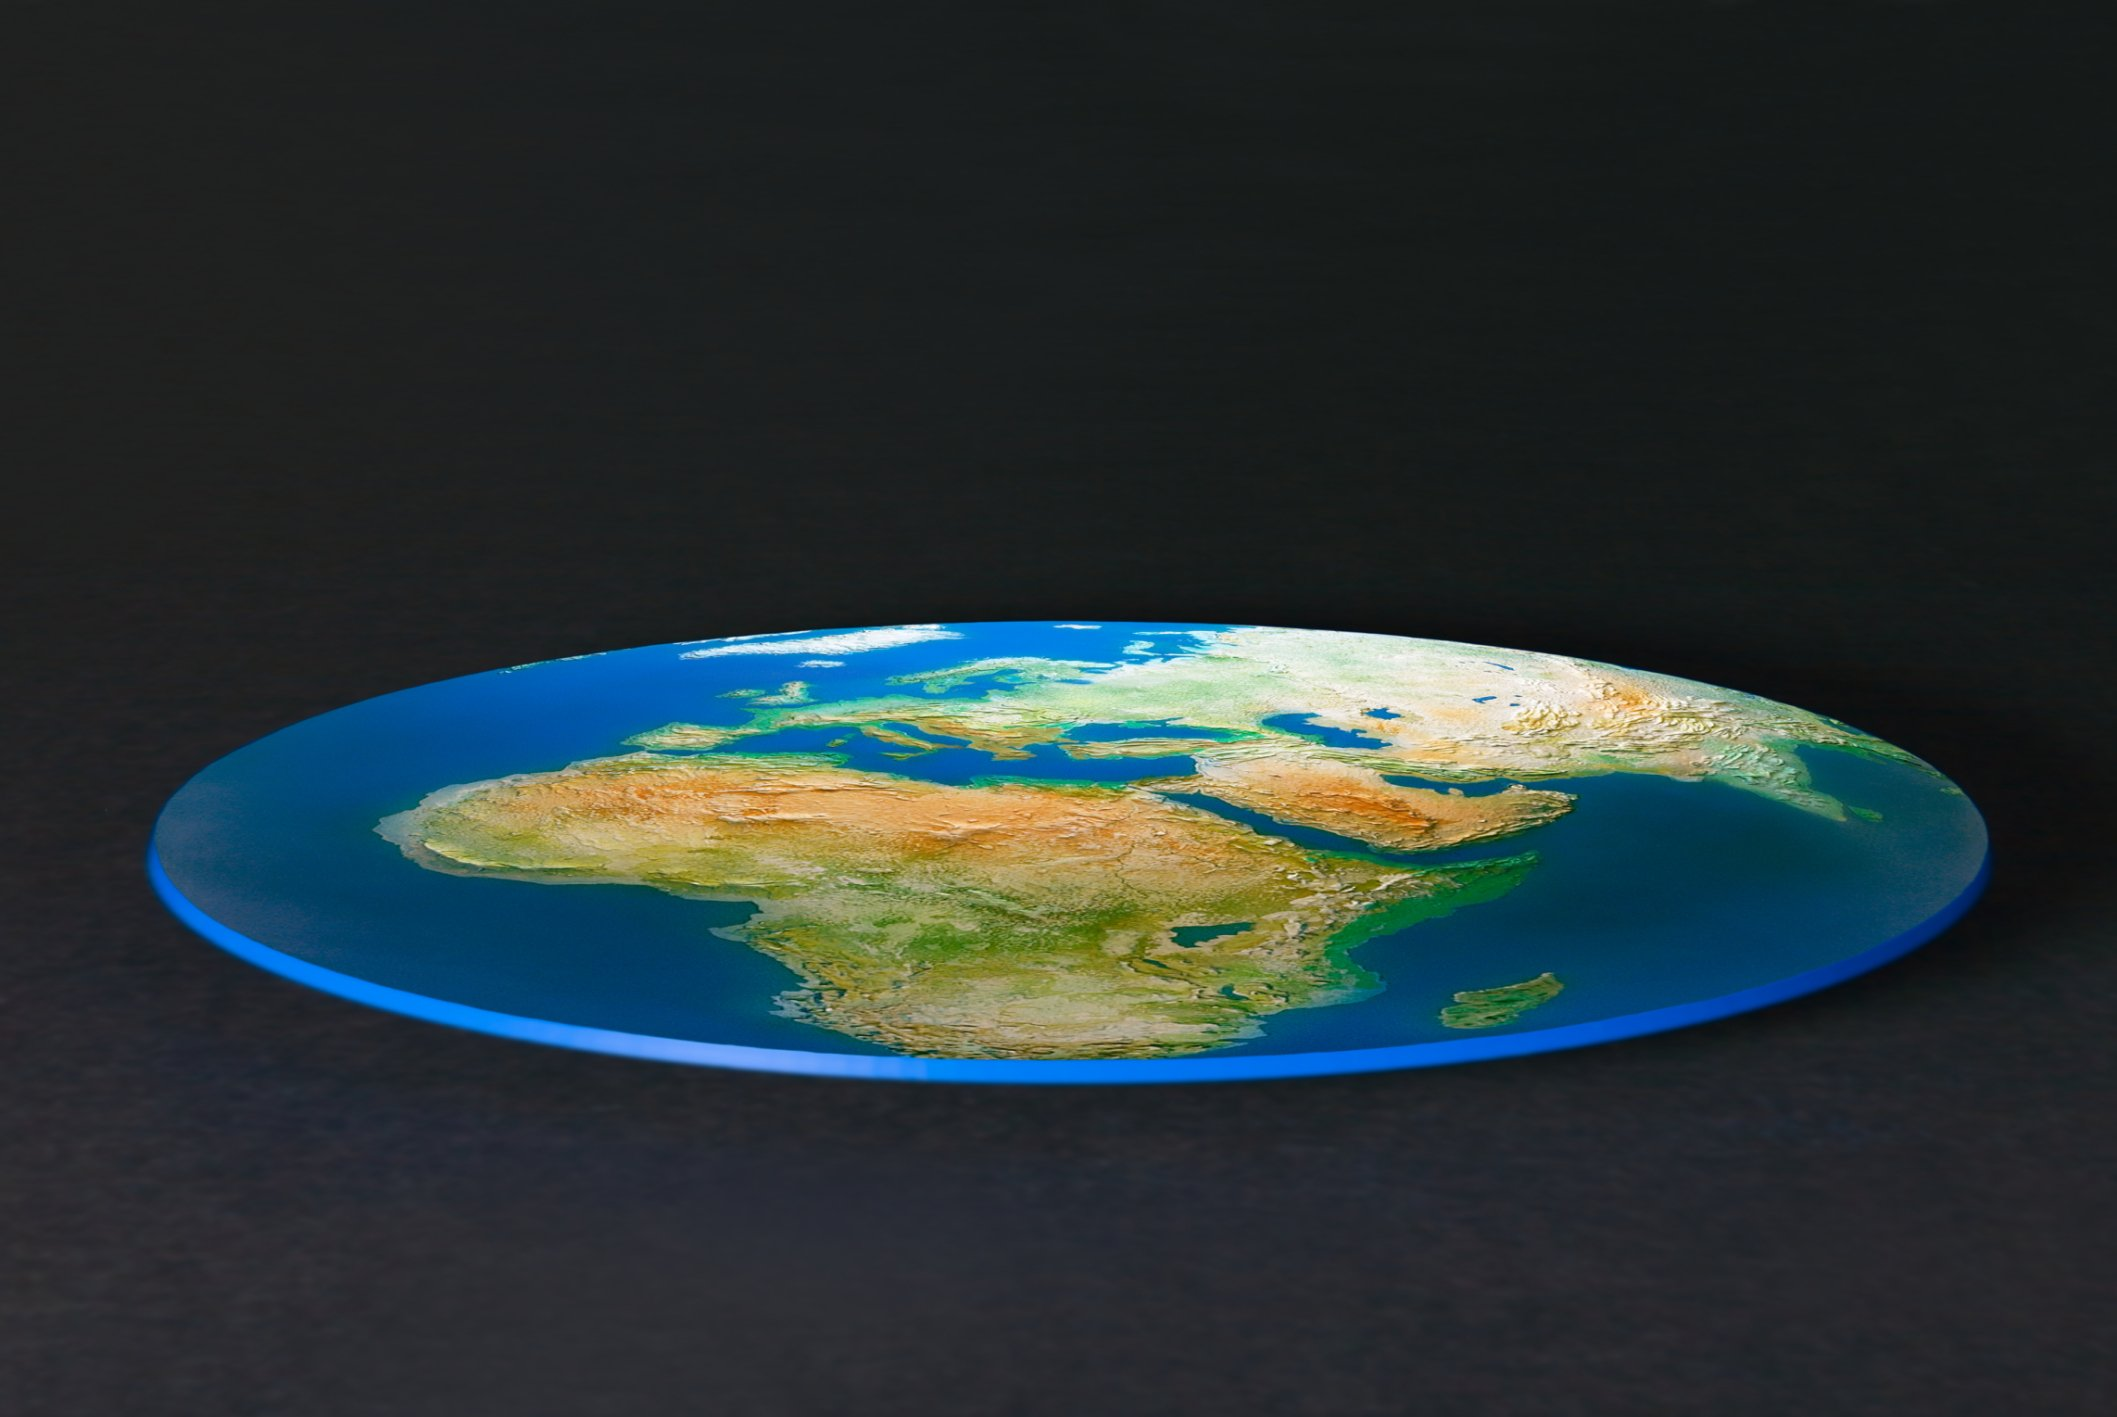 Here are 5 reasons that so many people believe that the Earth is flat